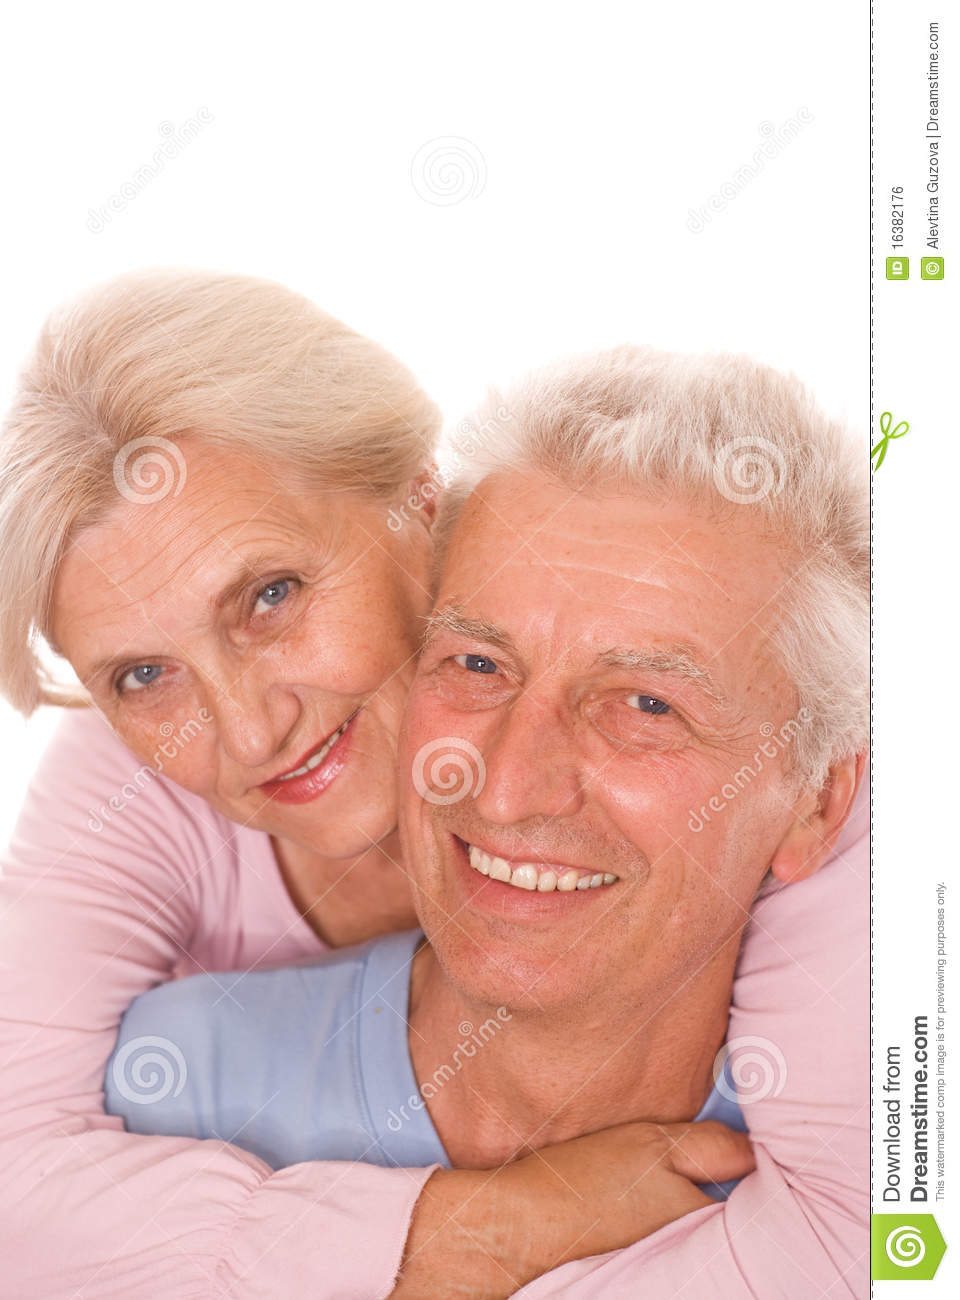 Royalty Free Stock Image  Happy elderly coupleHappy Elderly Couple